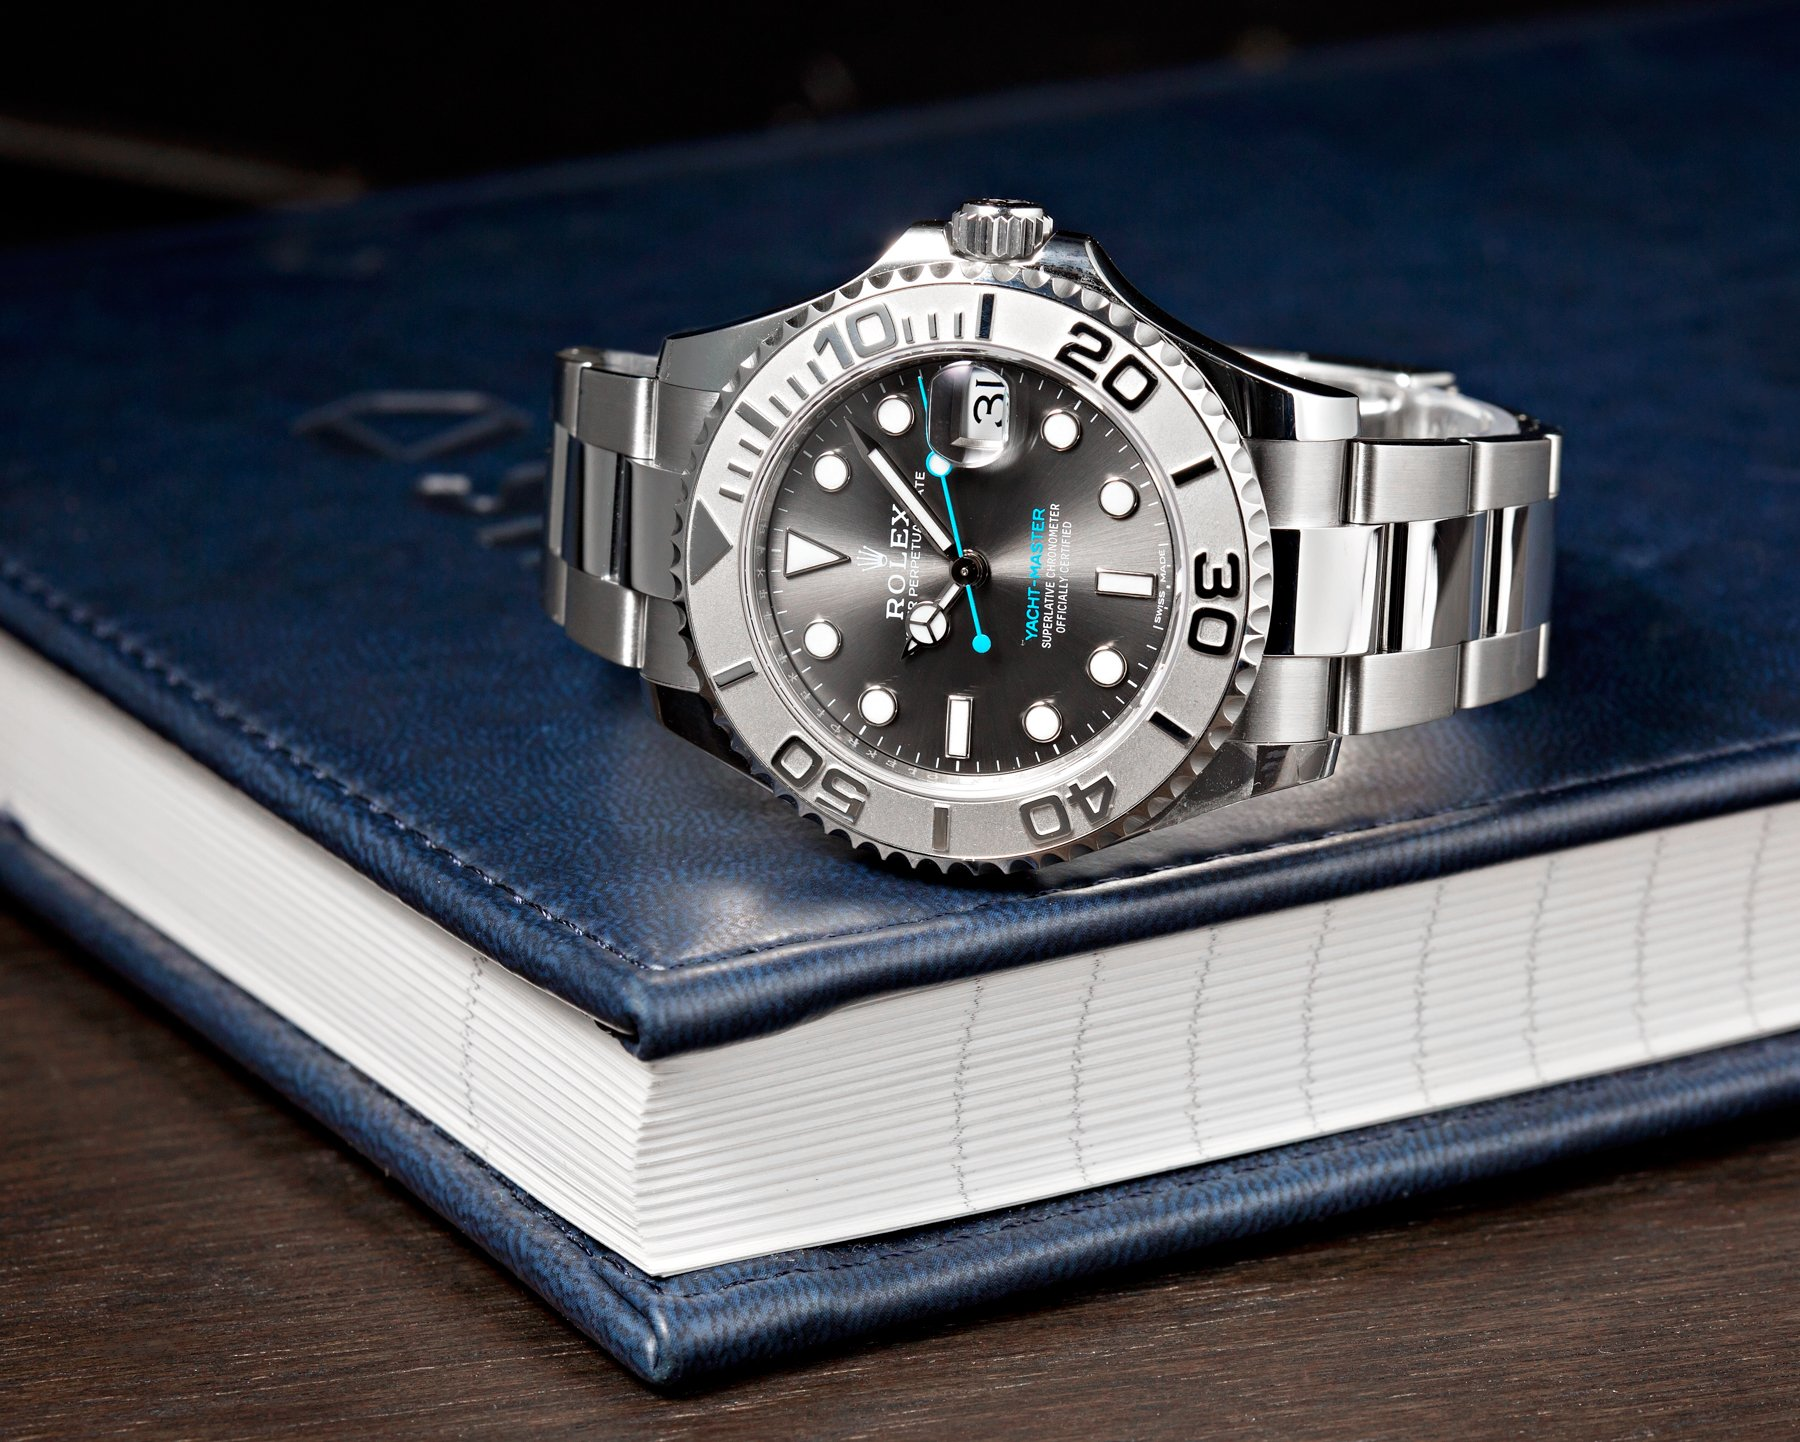 Rolex Baselworld 2016 released the Yacht-Master 40.